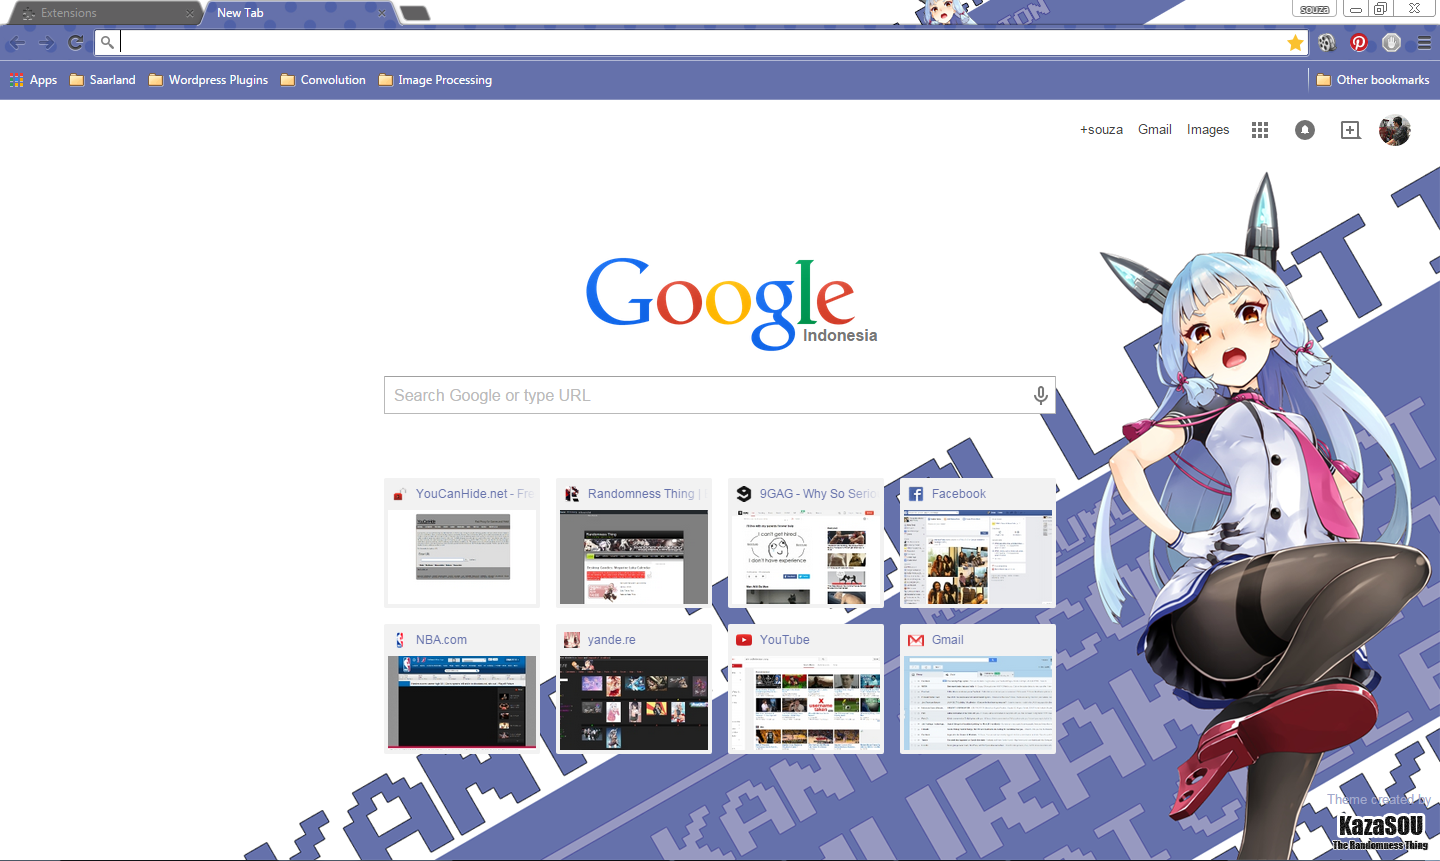 Google themes nba - Murakumo From Kantai Collection Kancolle Is Debuting In Her Google Chrome Theme In This